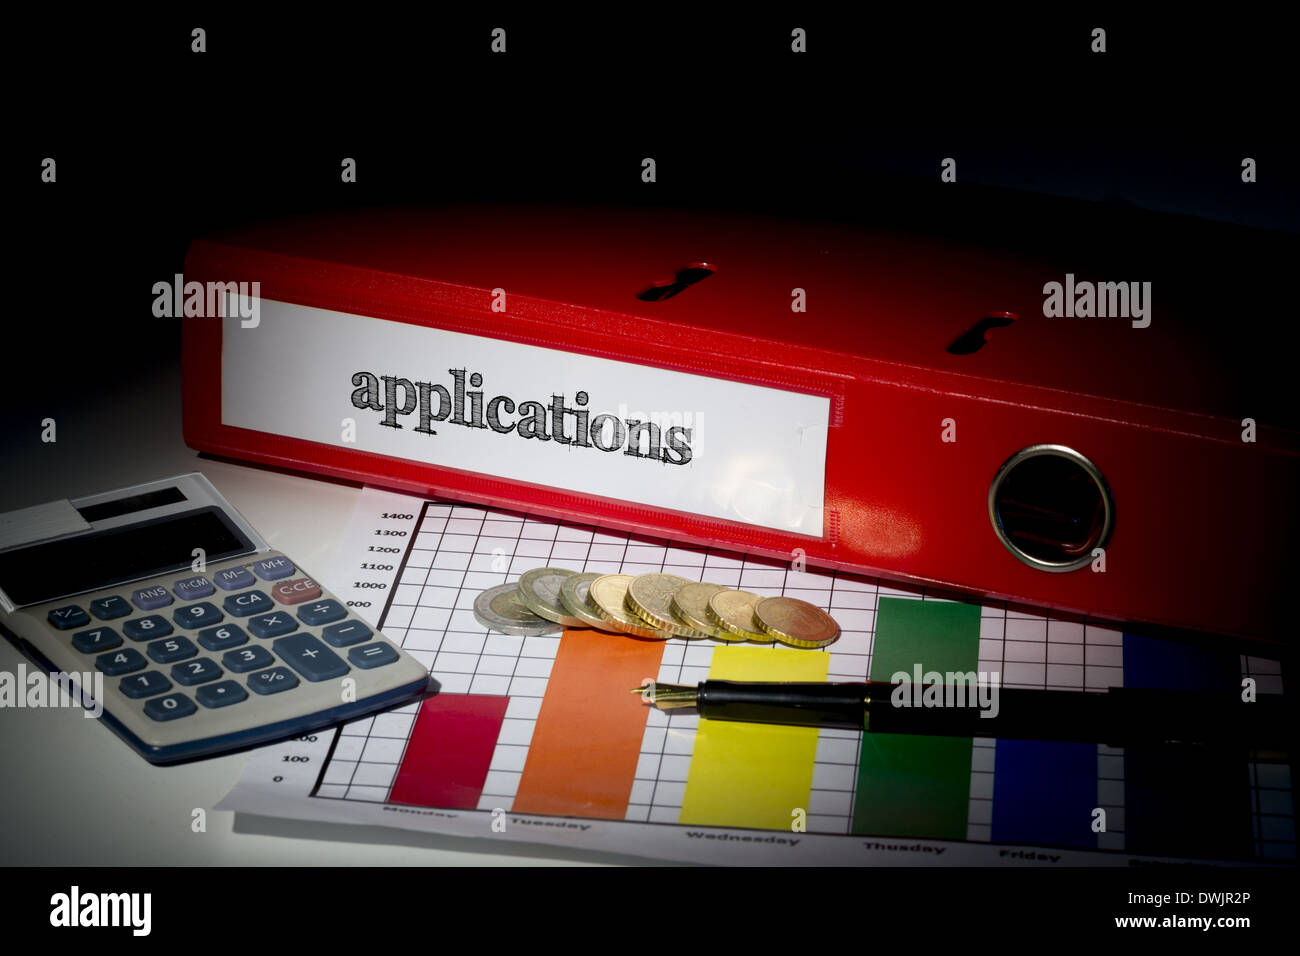 Applications on red business binder - Stock Image